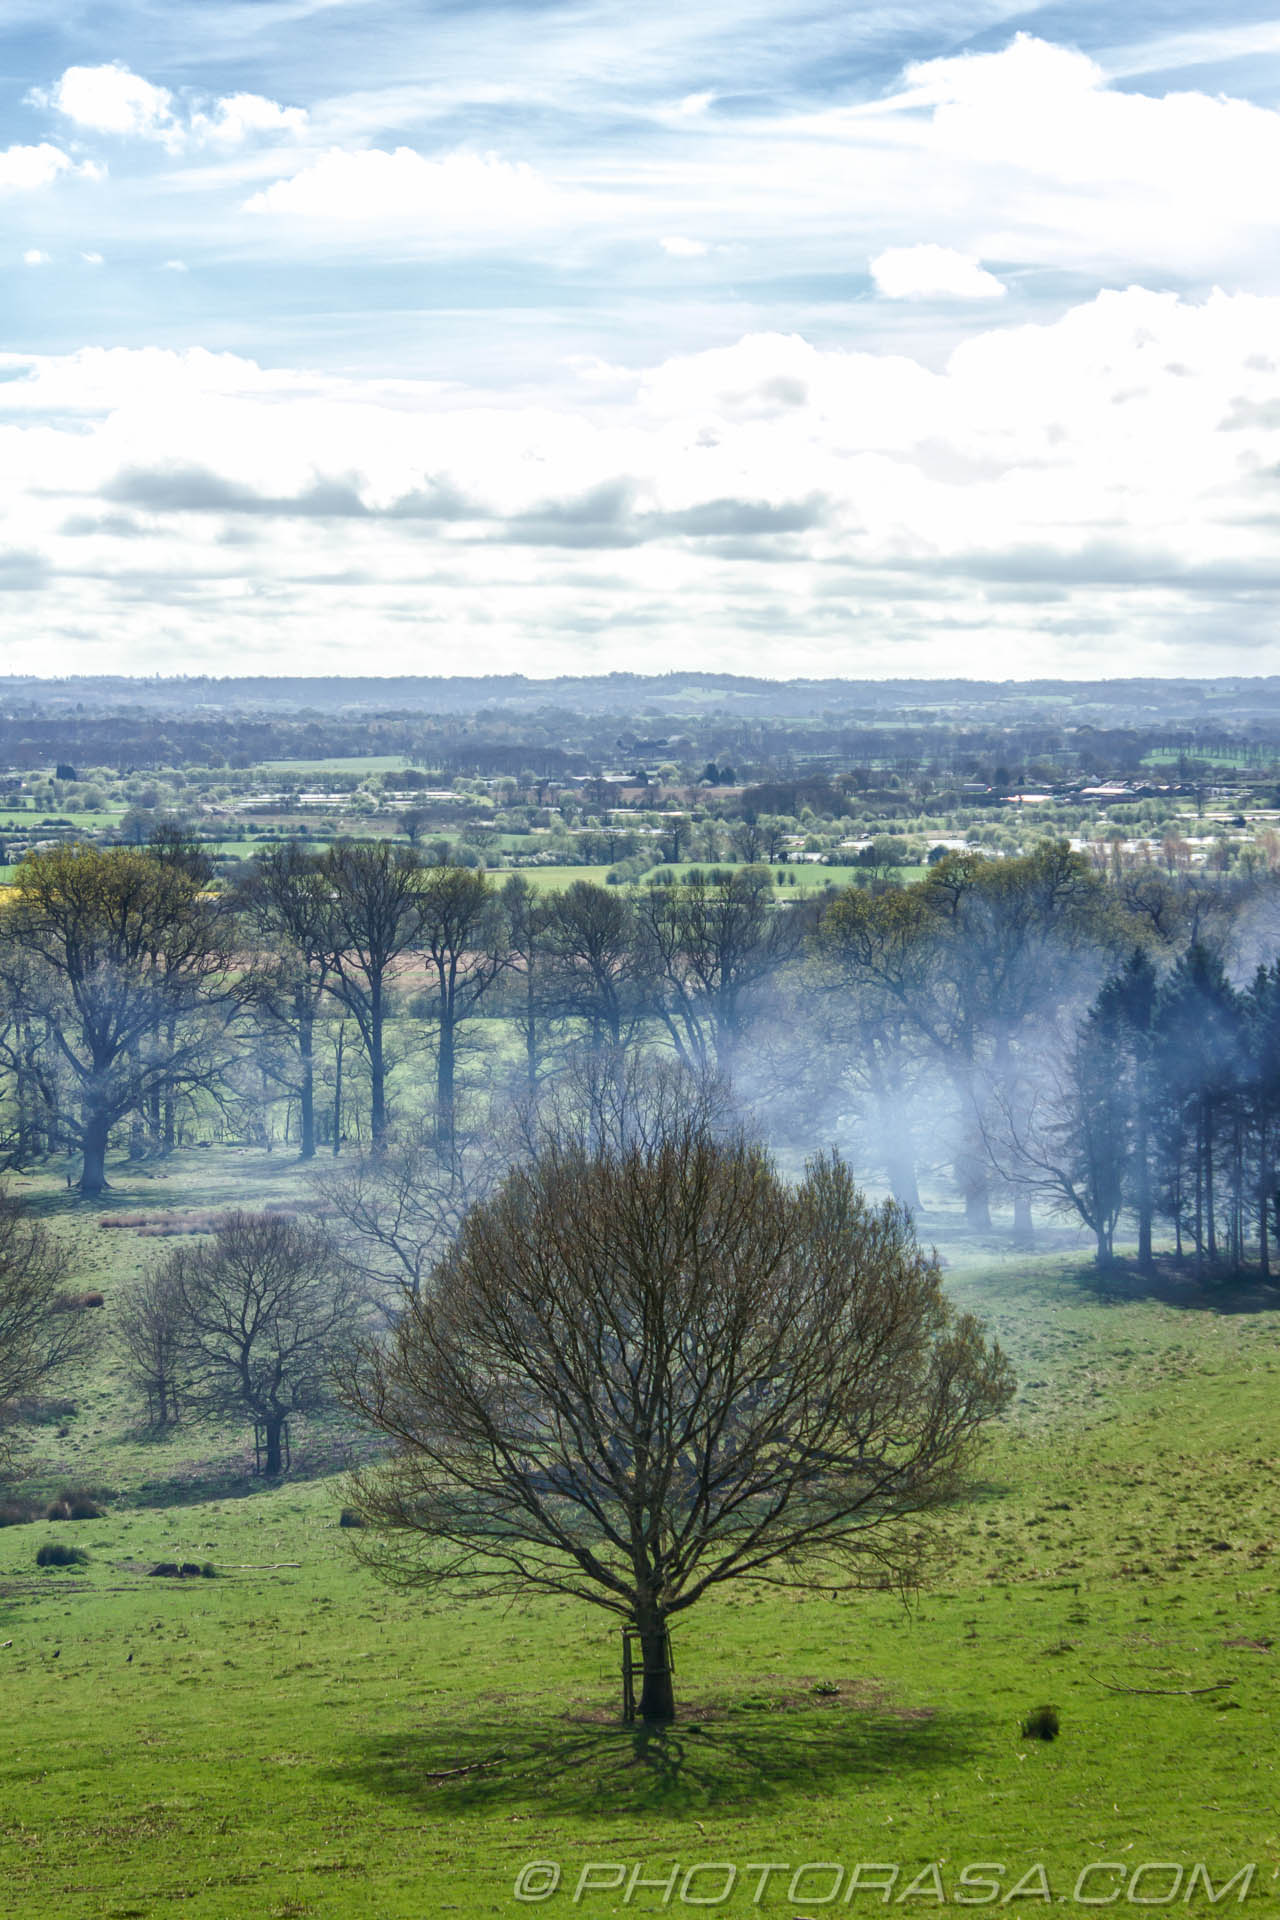 http://photorasa.com/view-boughton-monchelsea-churchyard/trees-and-smoke/